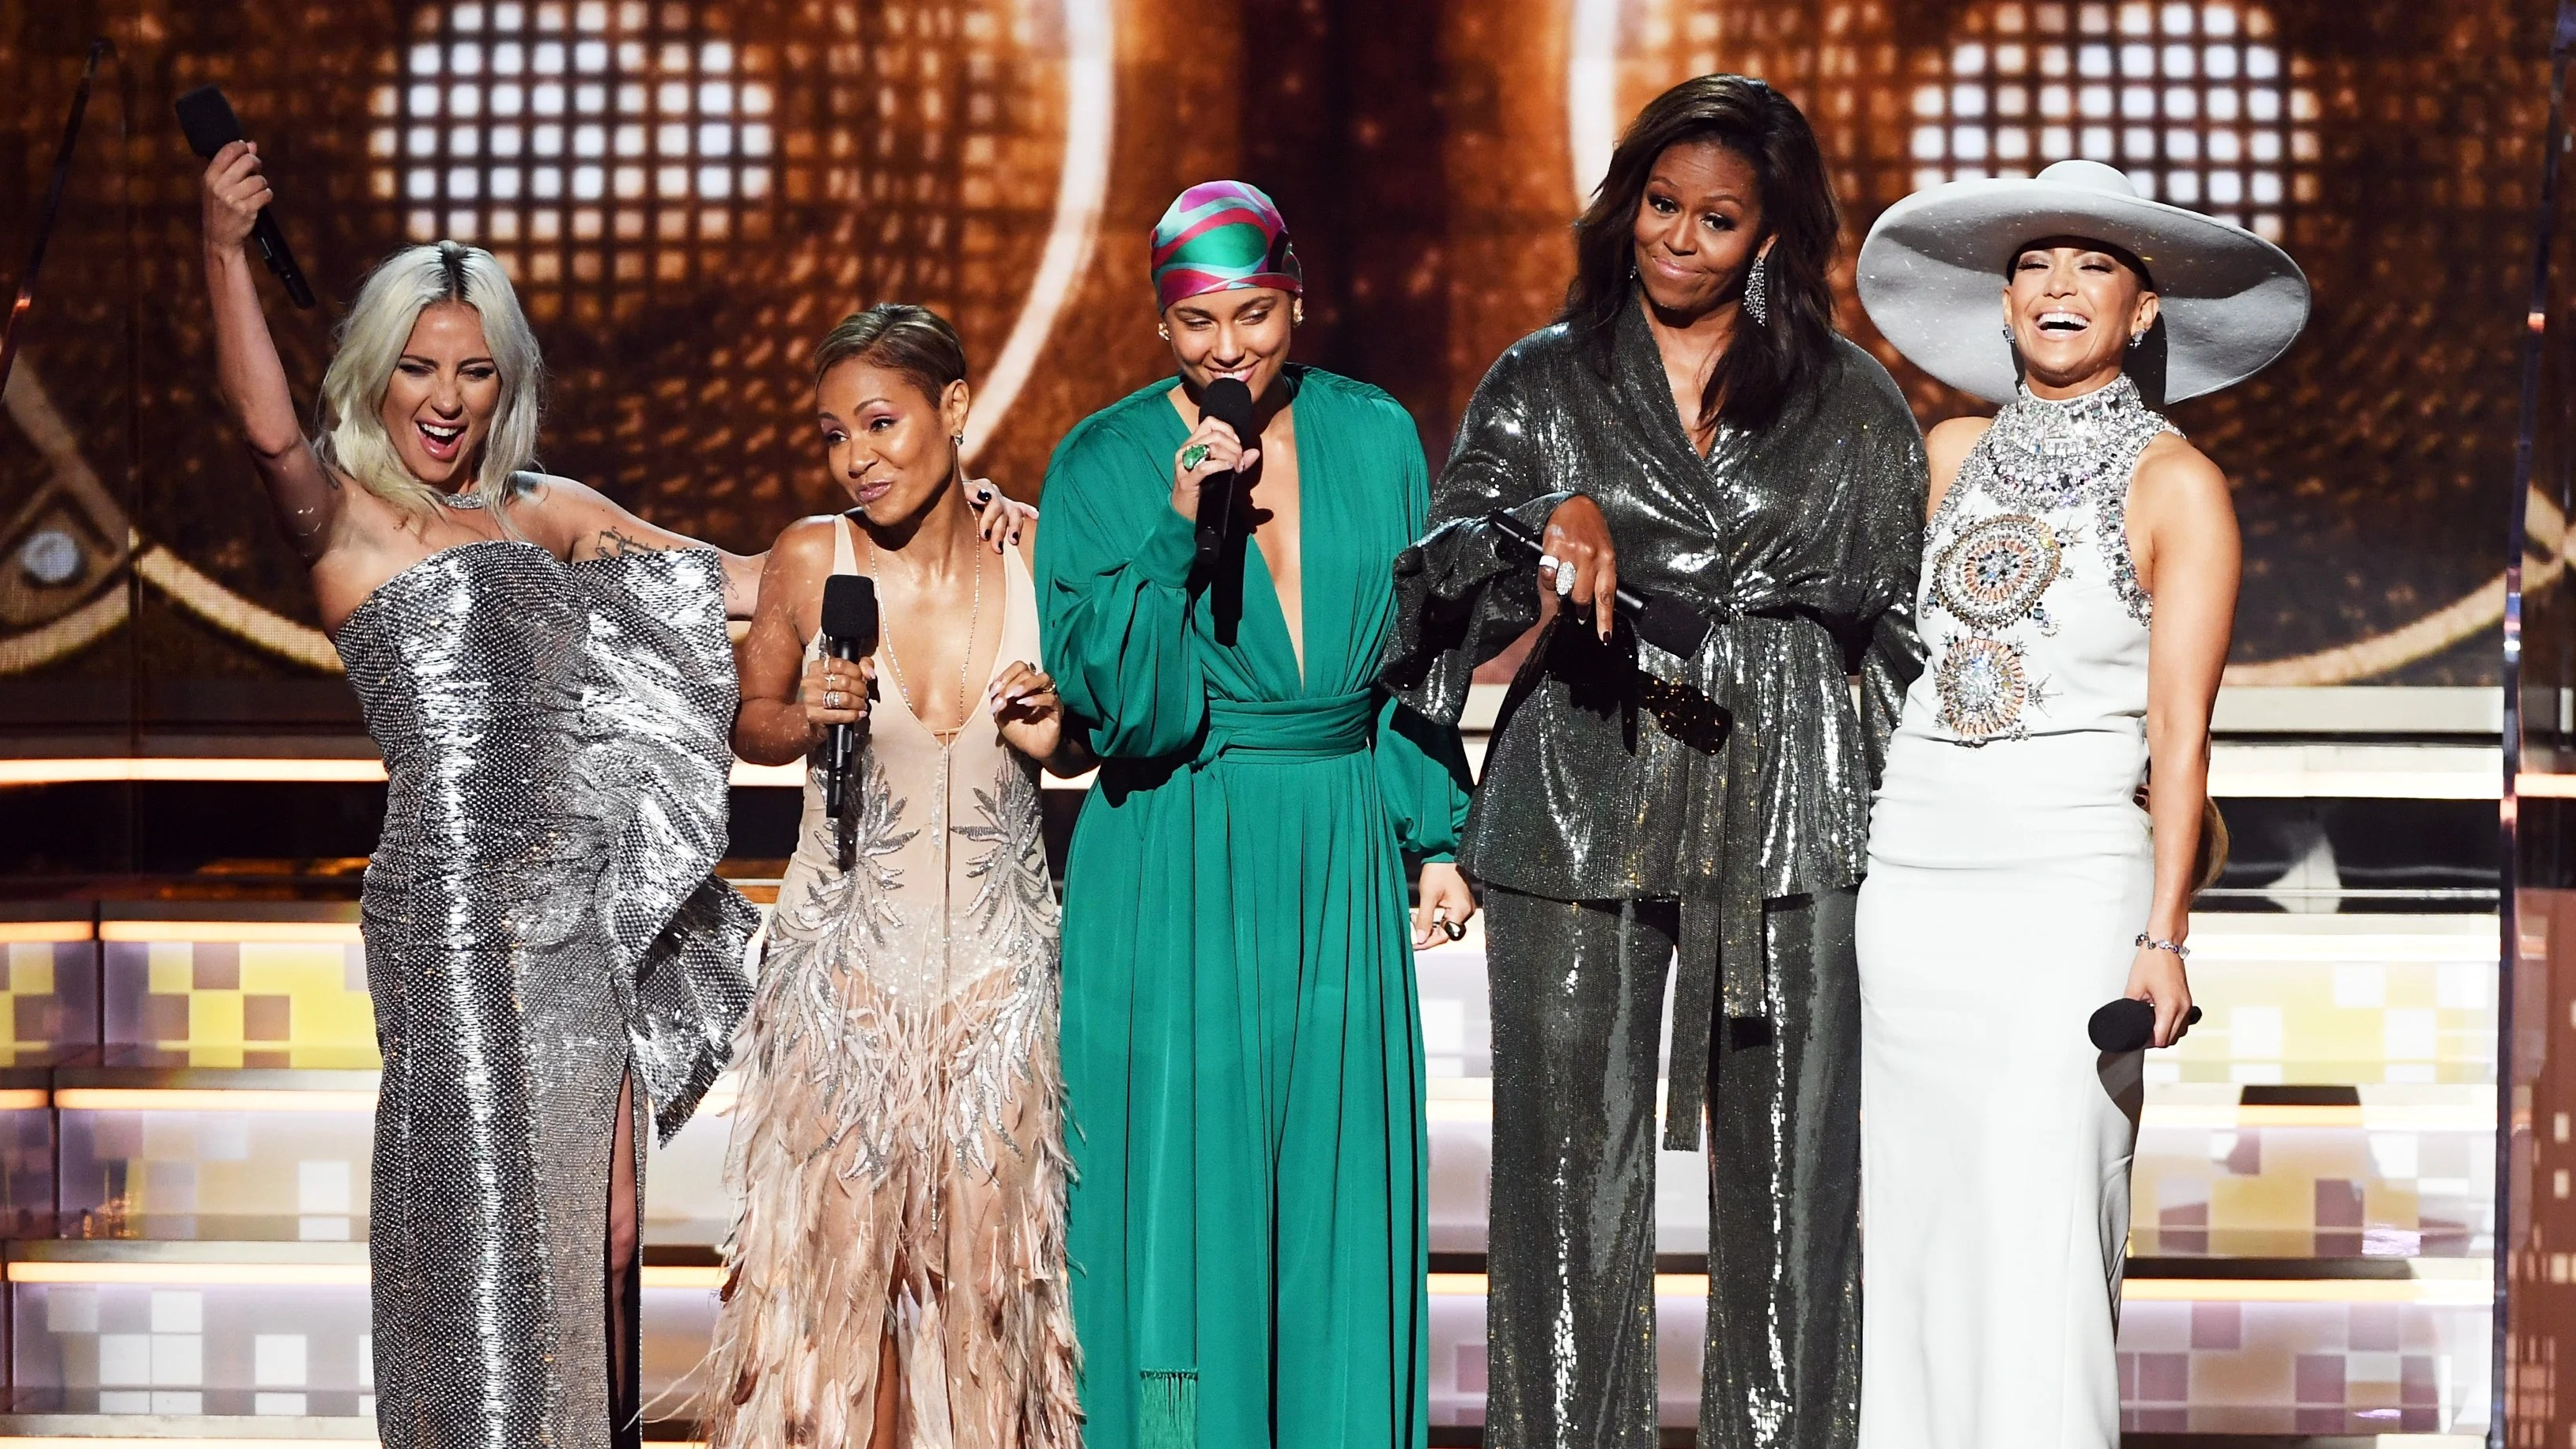 Bebe Dresden Grammy Awards 2019 The Complete List Of Winners Inside Edition